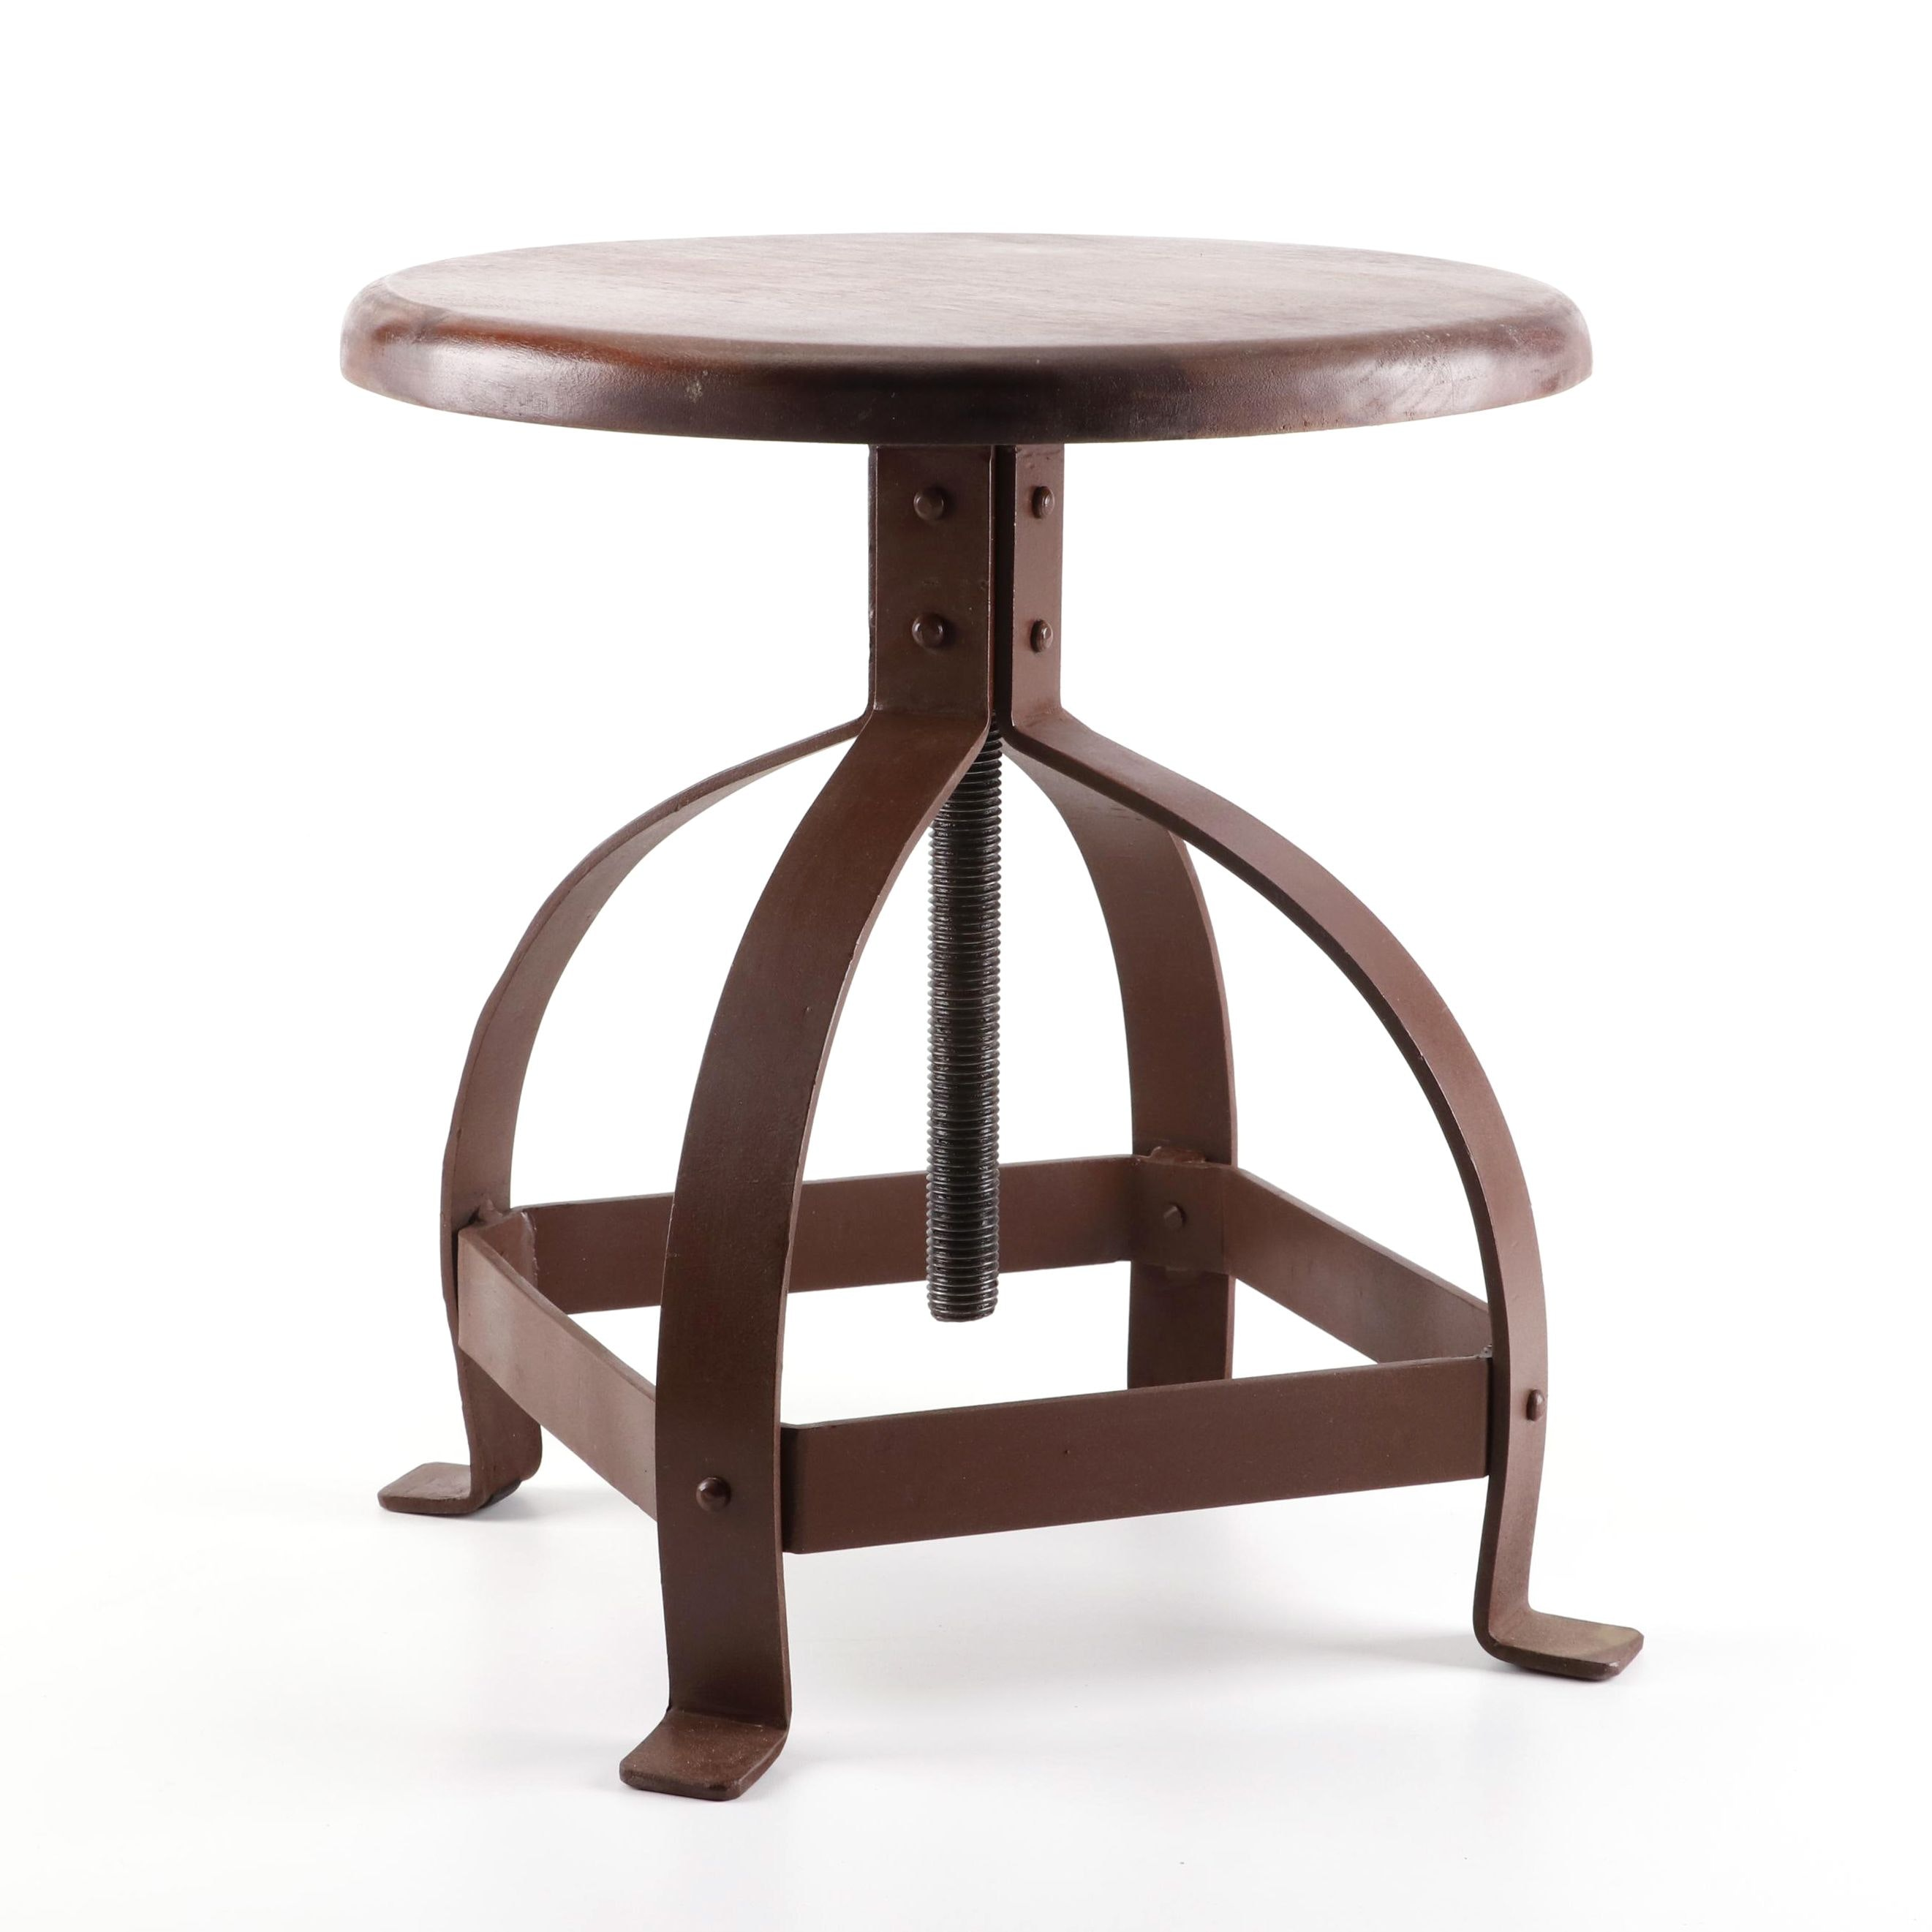 Industrial Style Metal and Wood Adjustable Stool, 21st Century